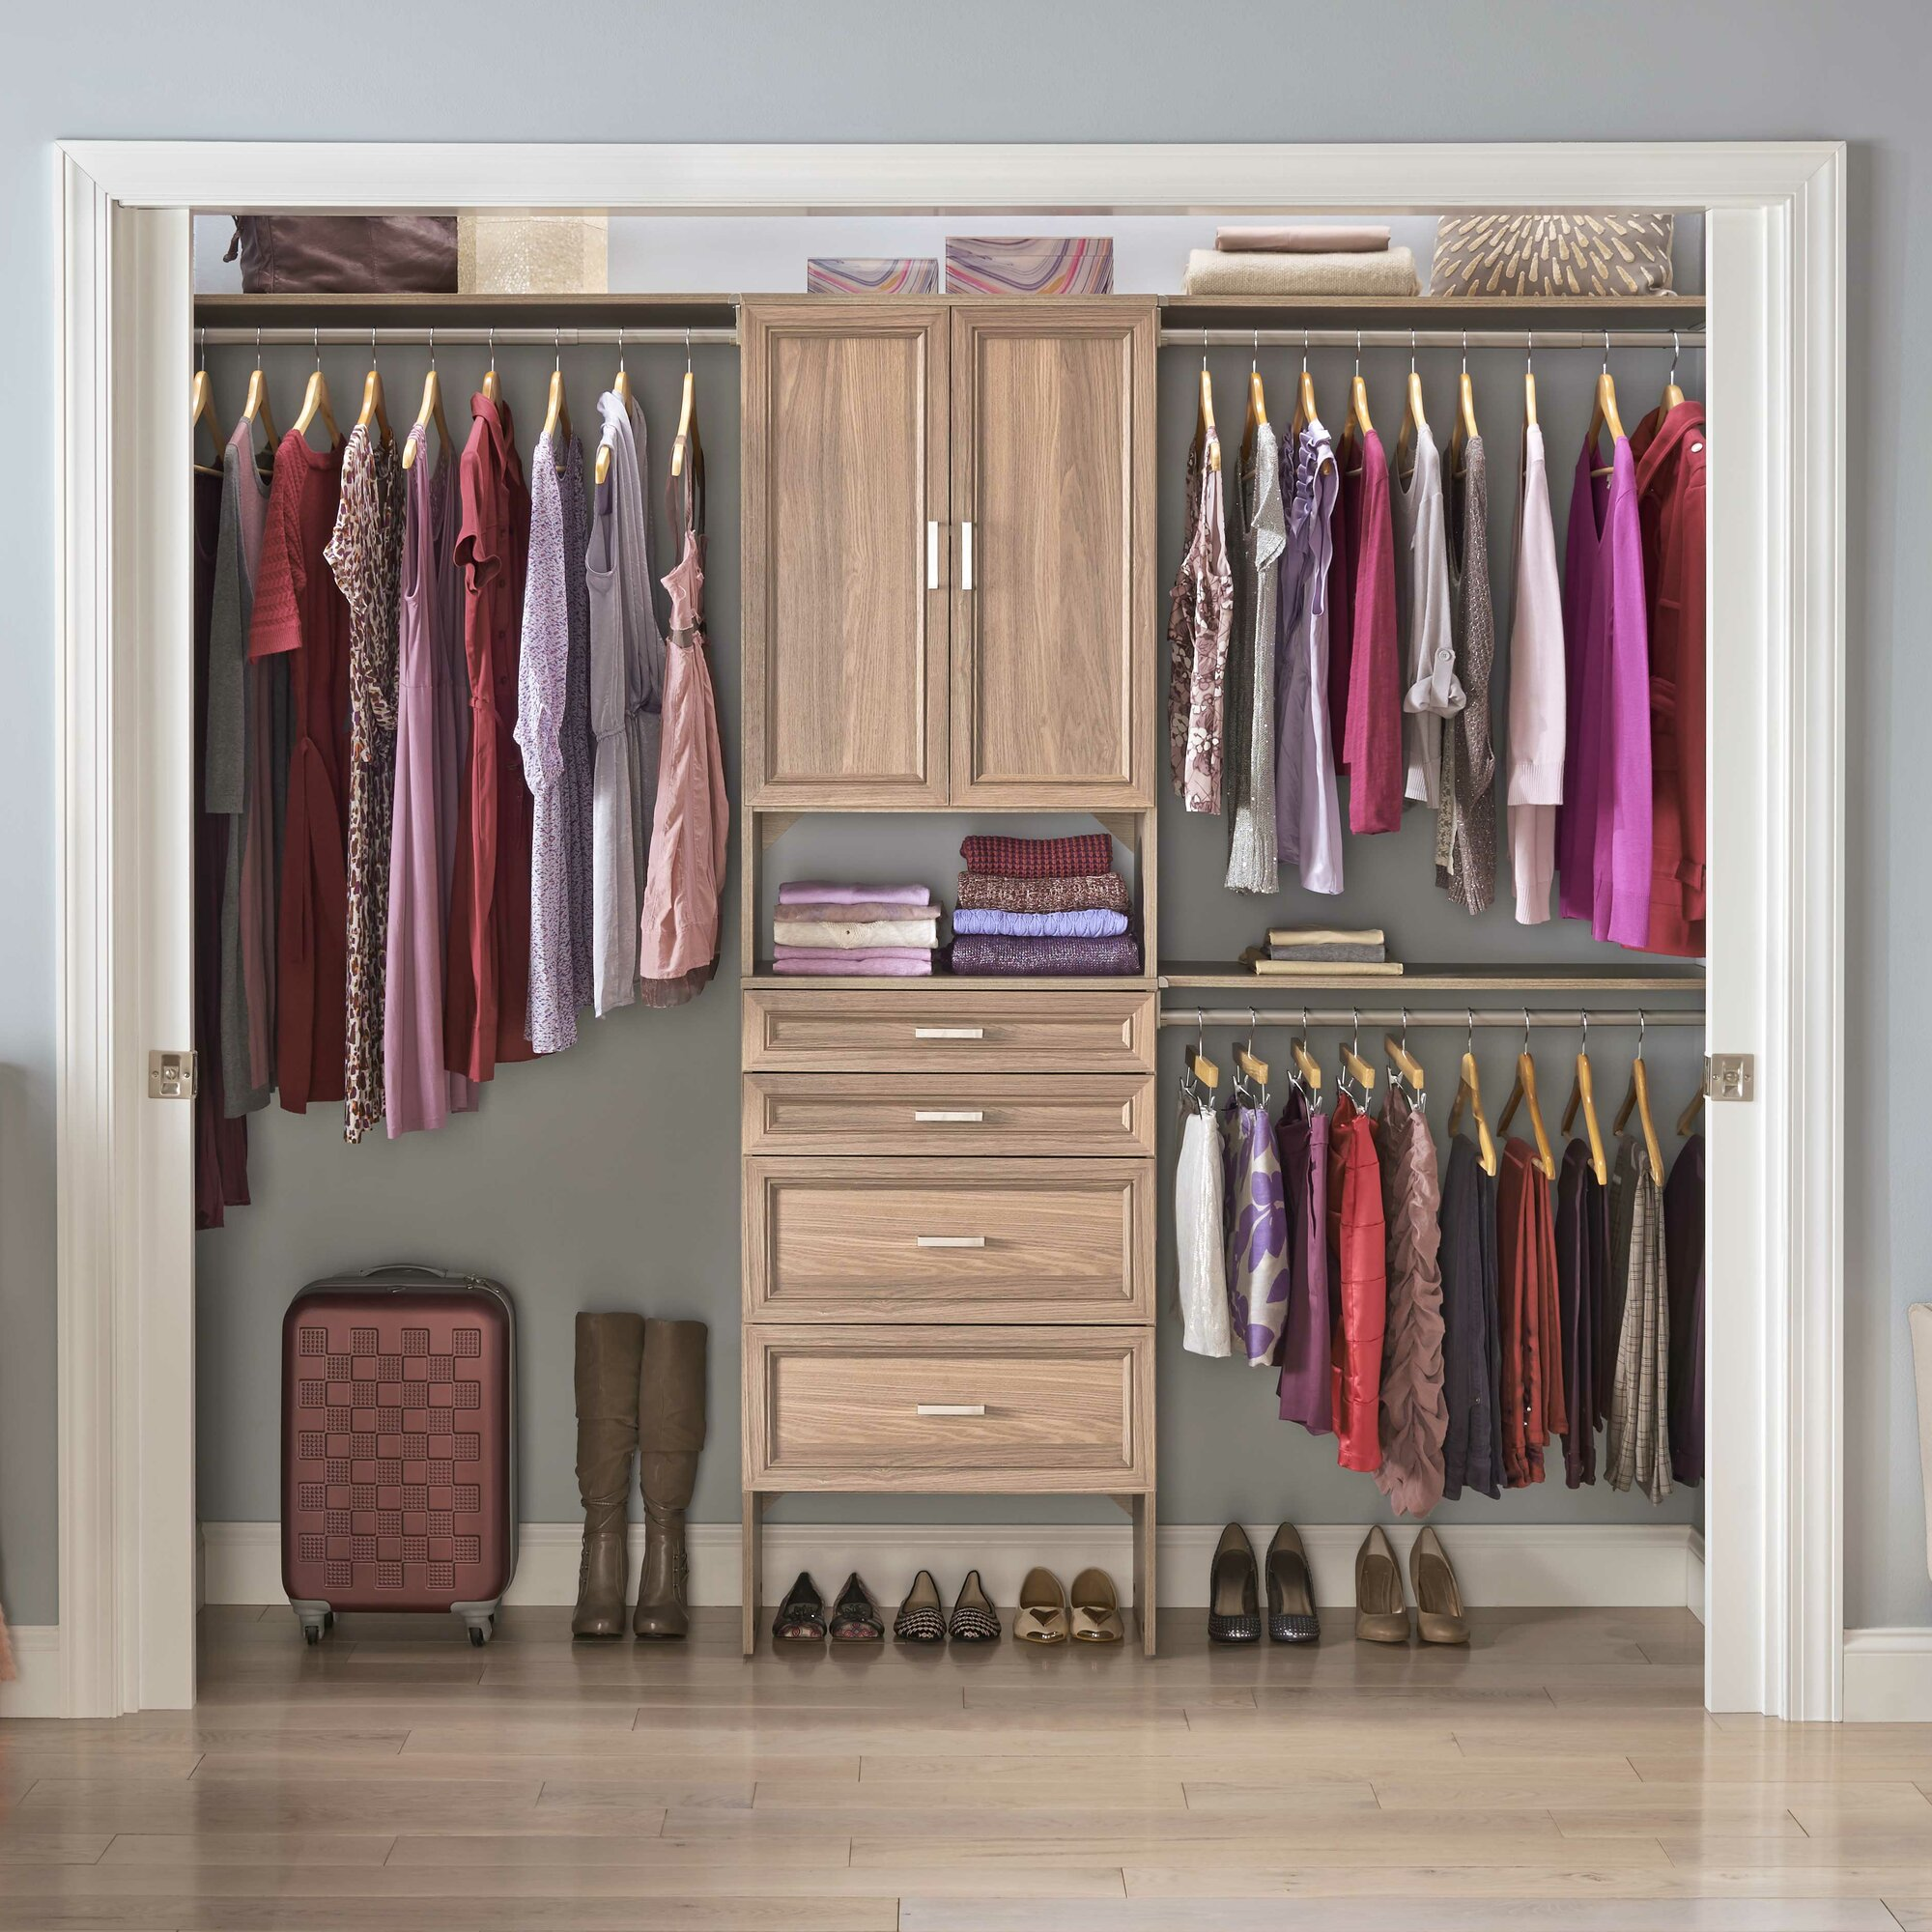 Closetmaid suitesymphony 84 w 120 w closet system for One day doors and closets reviews